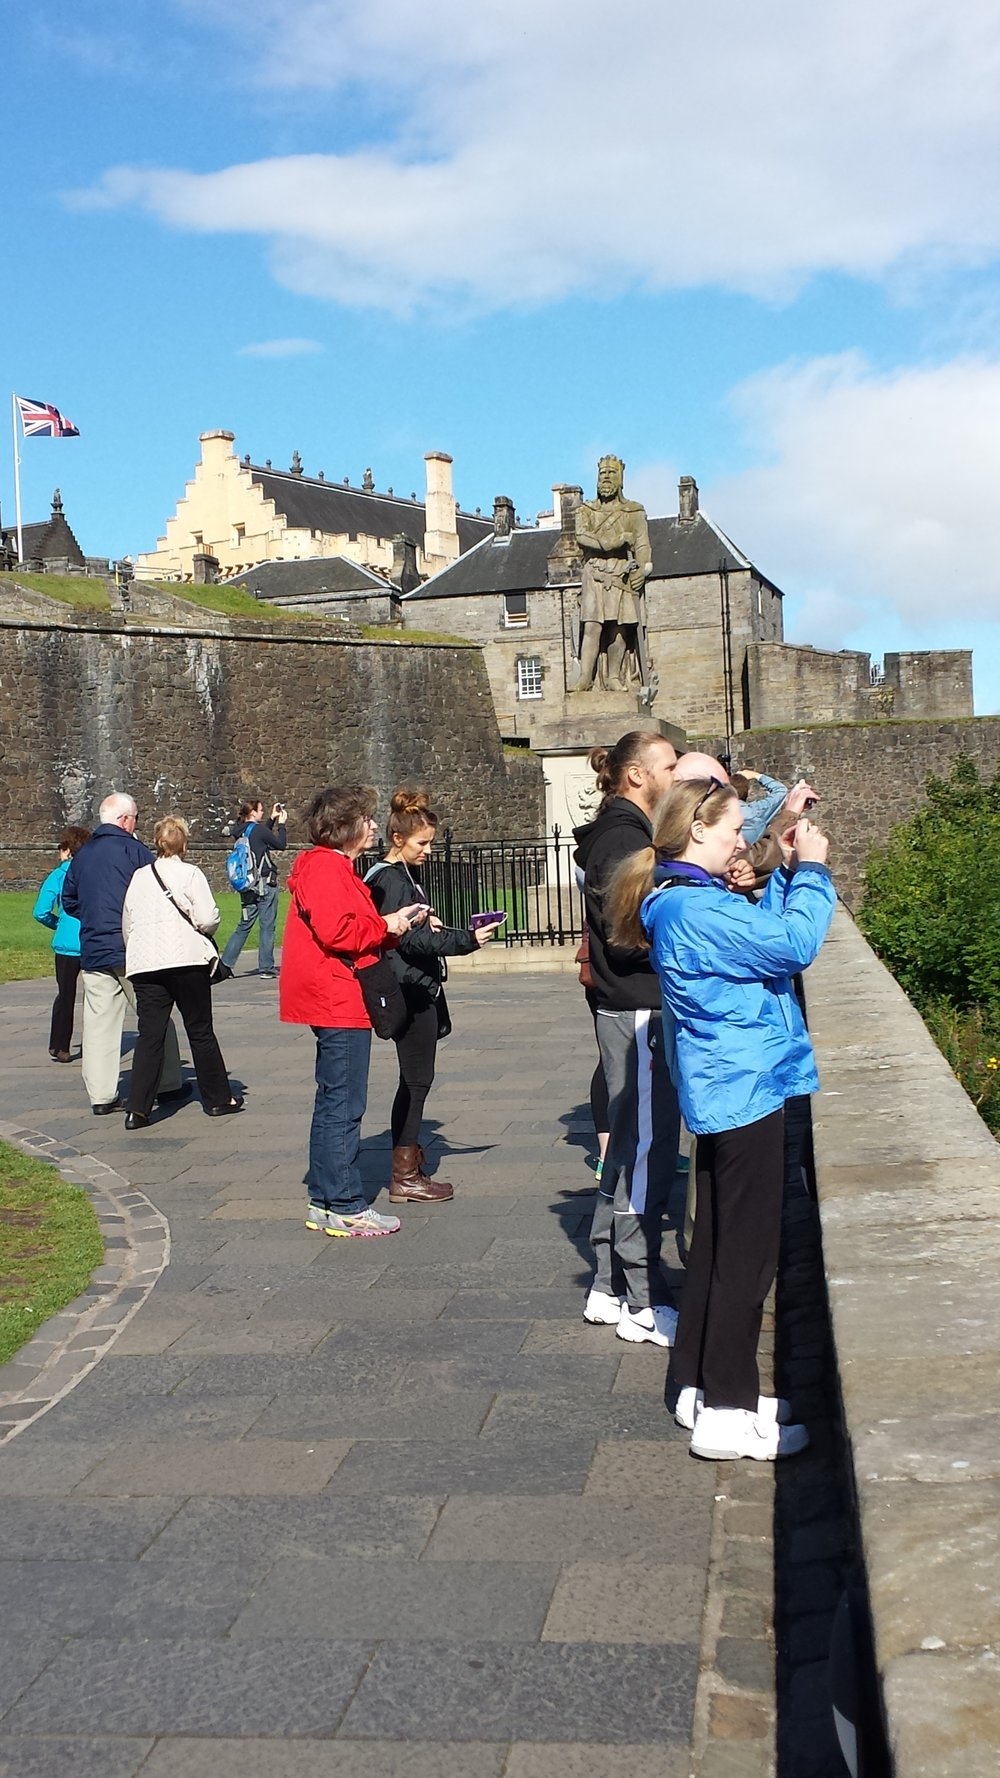 20160831_103329 stirling castle.jpg